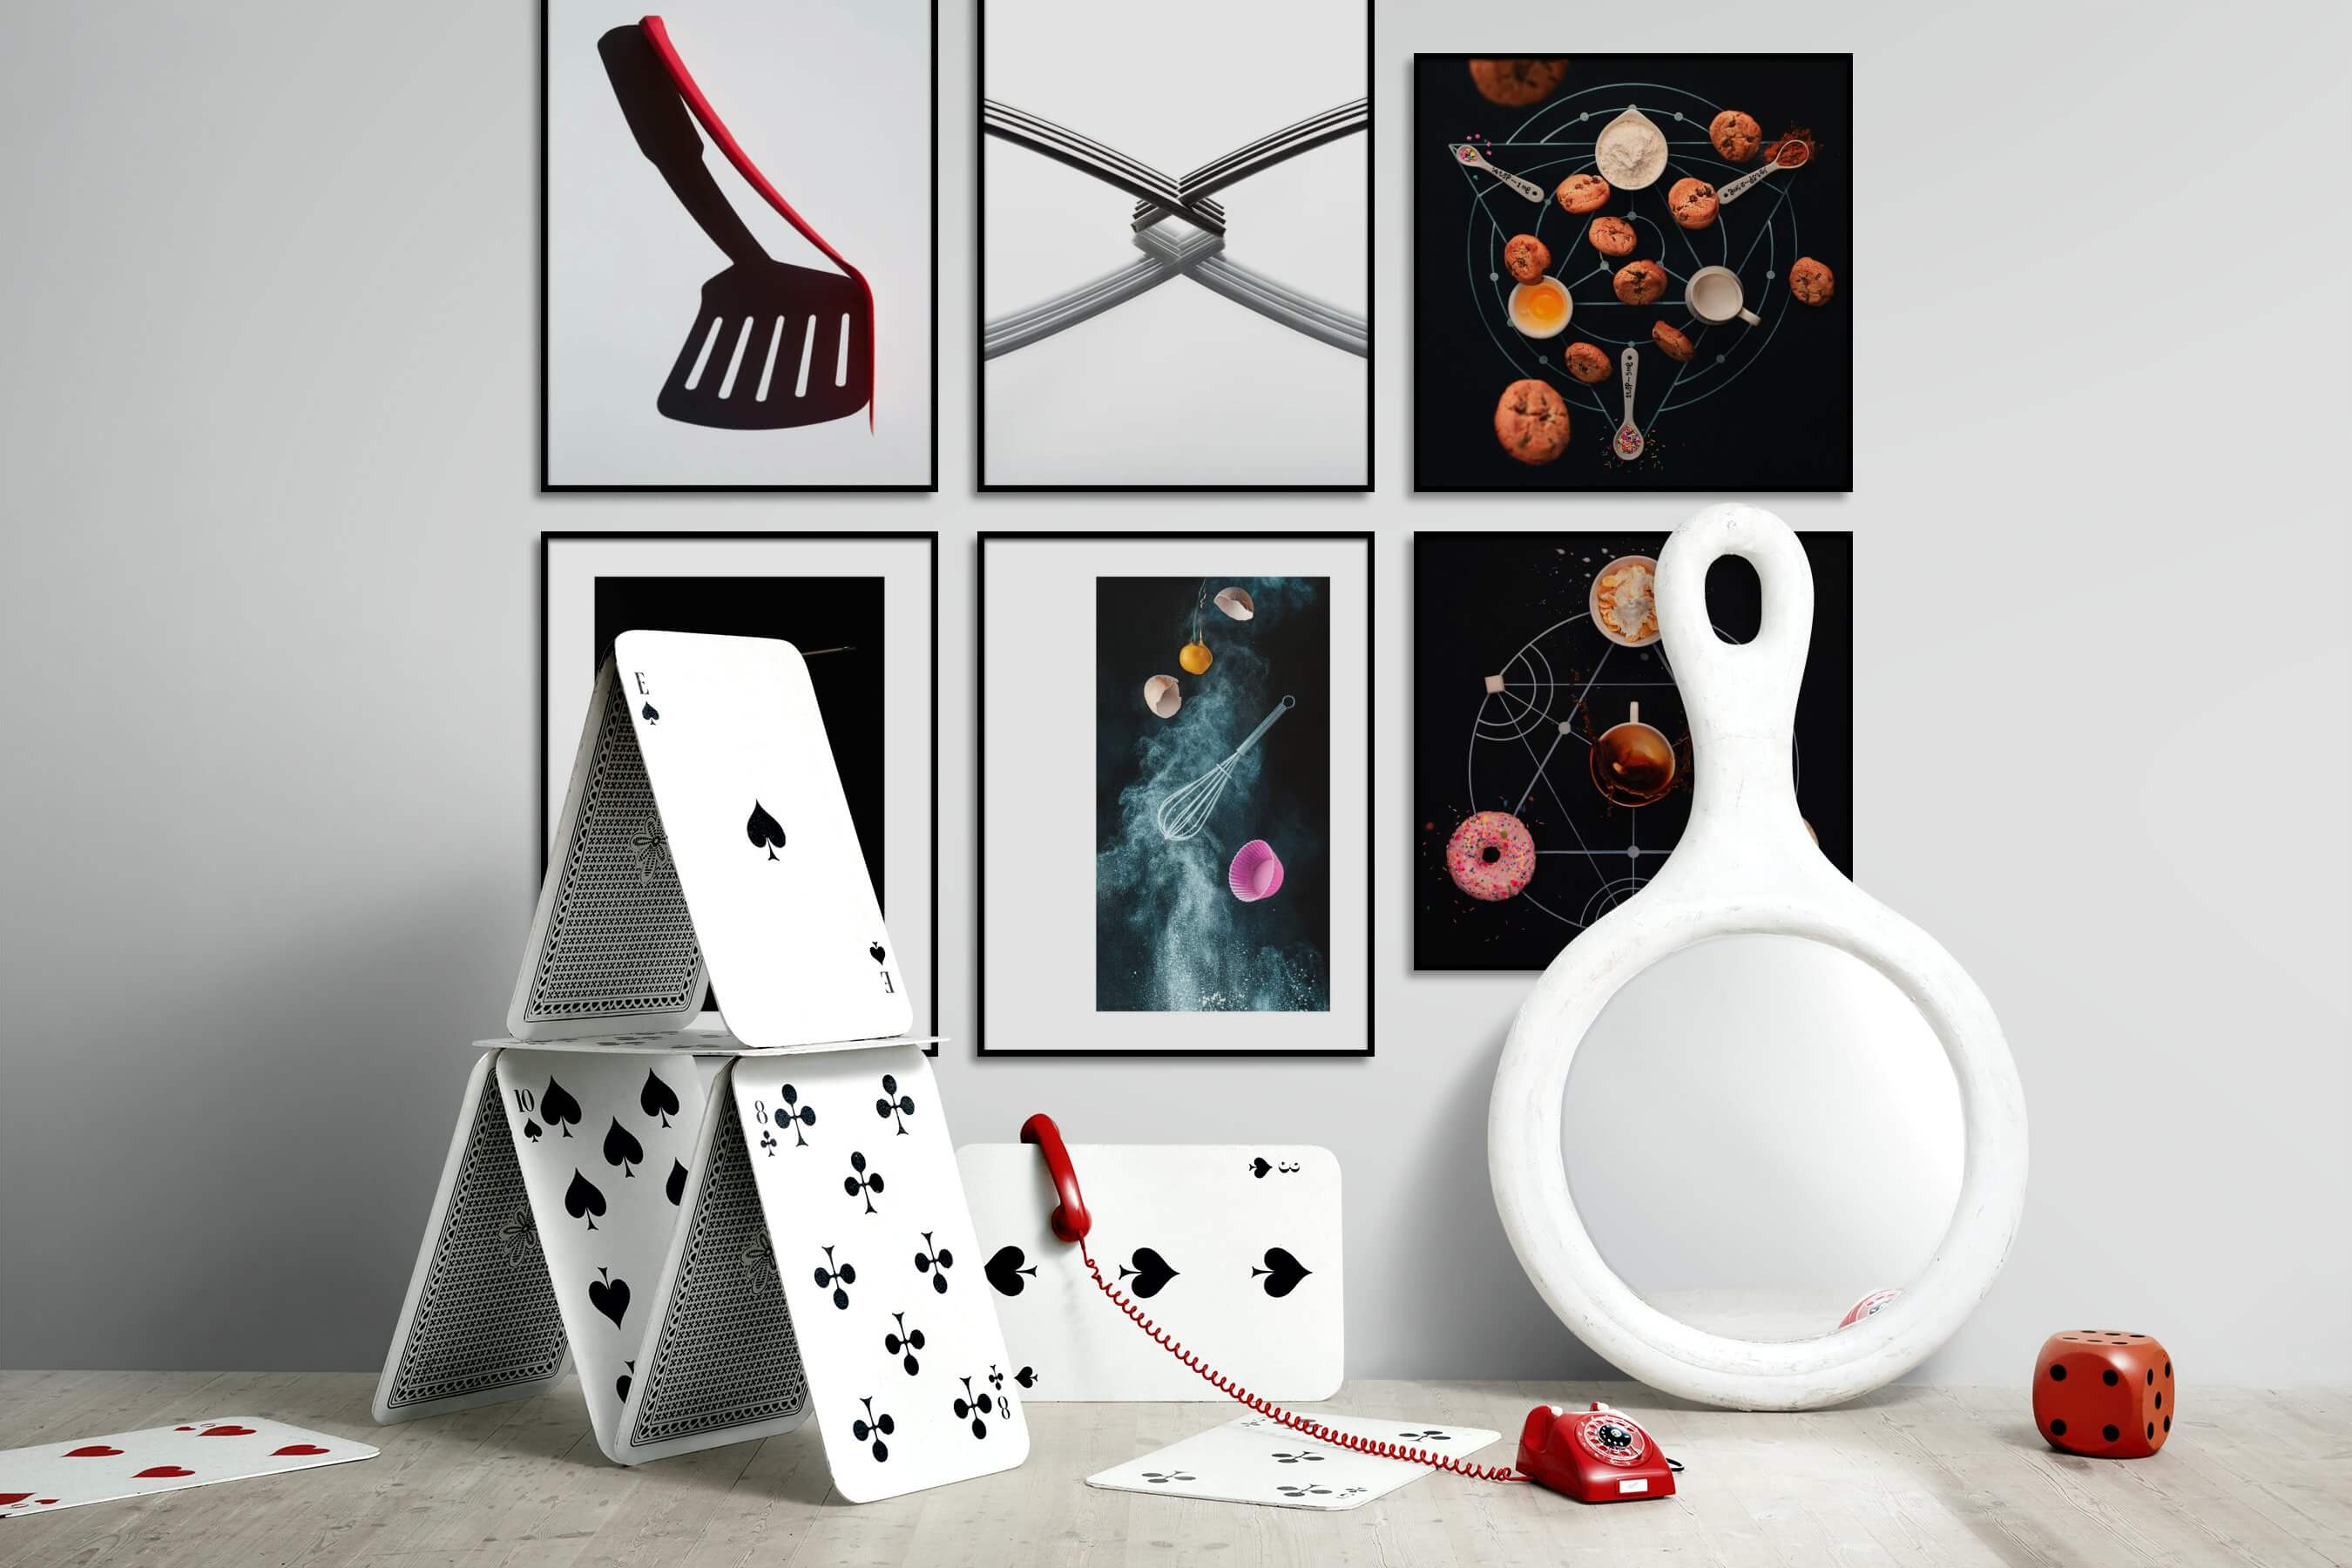 Gallery wall idea with six framed pictures arranged on a wall depicting Bright Tones, For the Minimalist, Black & White, For the Moderate, and Dark Tones